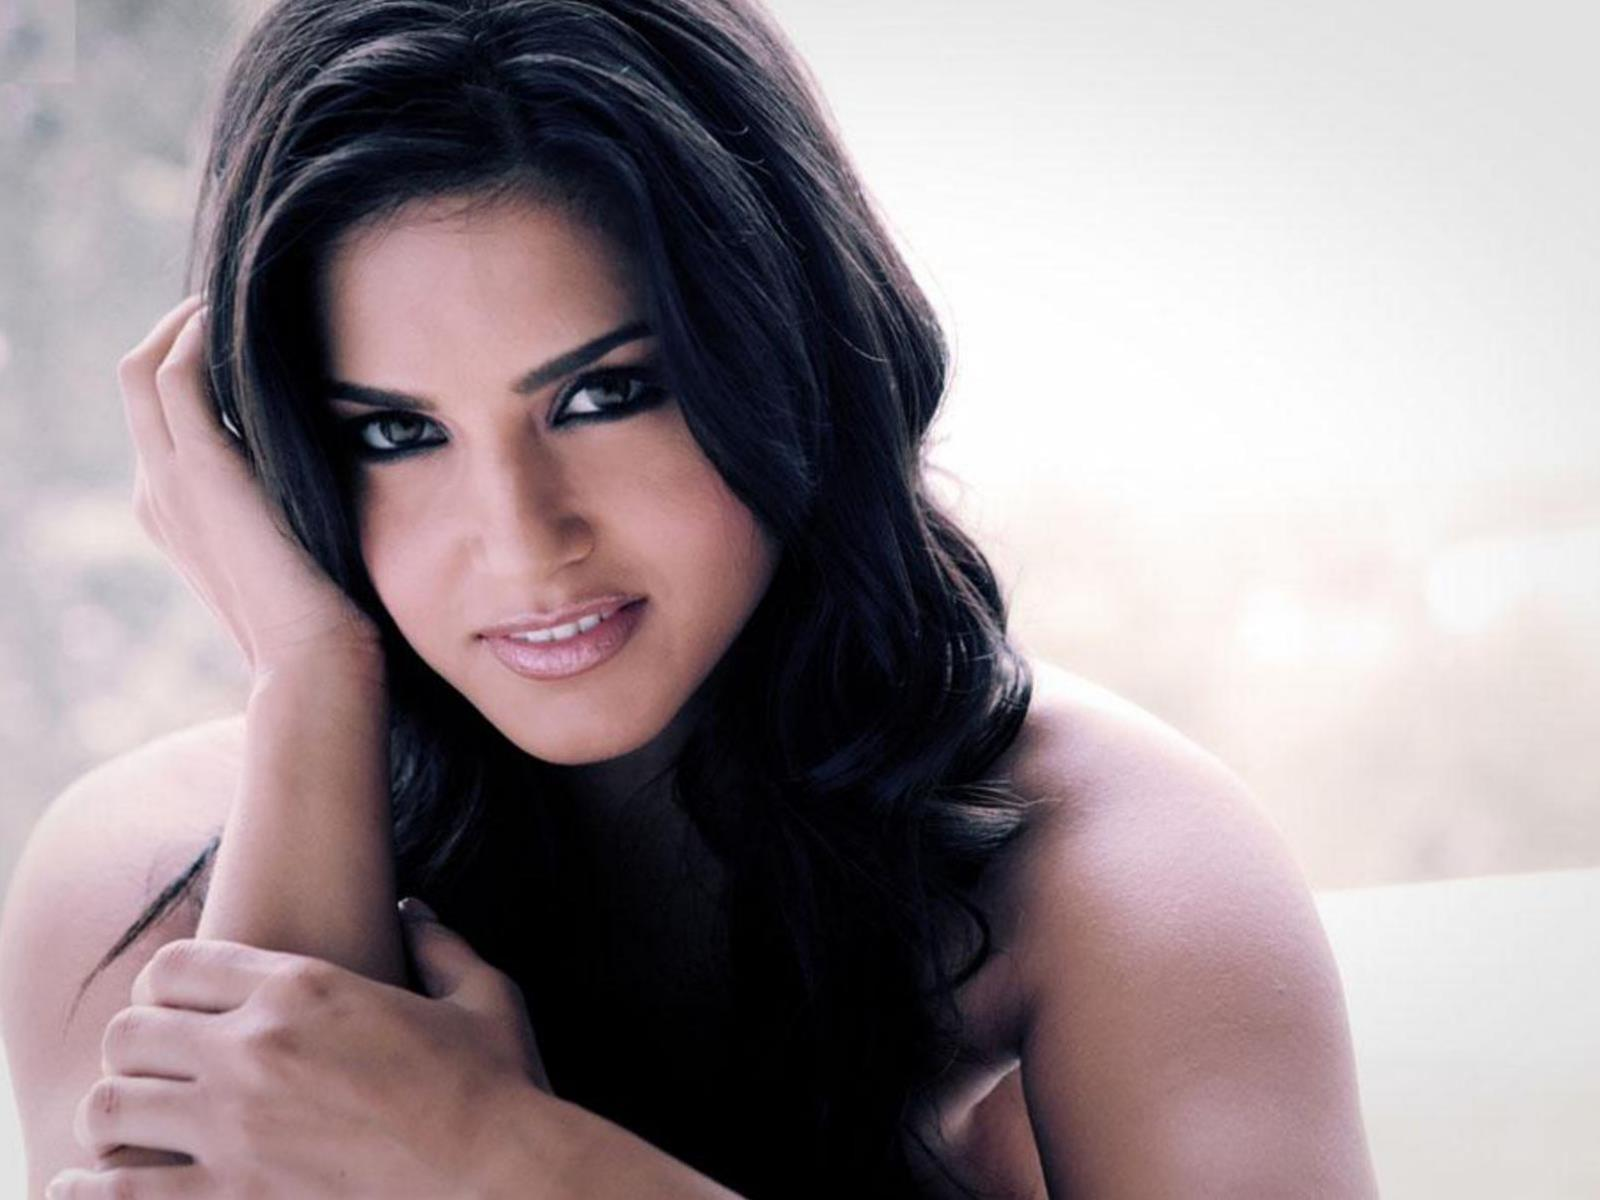 Sunny leone hd wallpapers for windows 7 sunny leone - Sunny leone full hd wallpaper ...